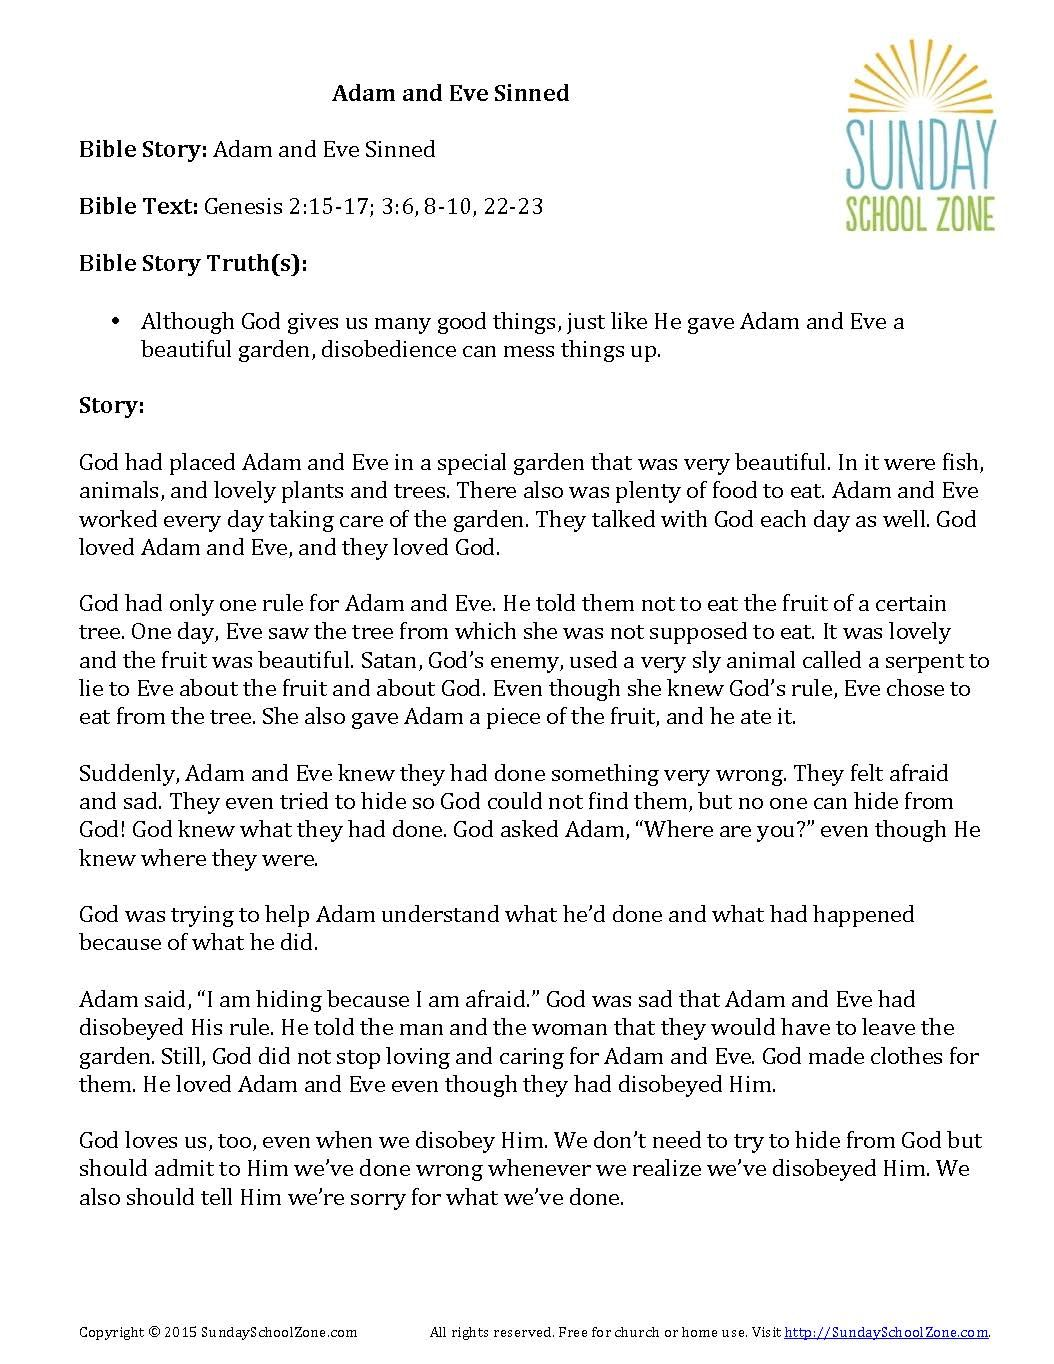 adam and eve sinned bible story summary adam and eve sinned